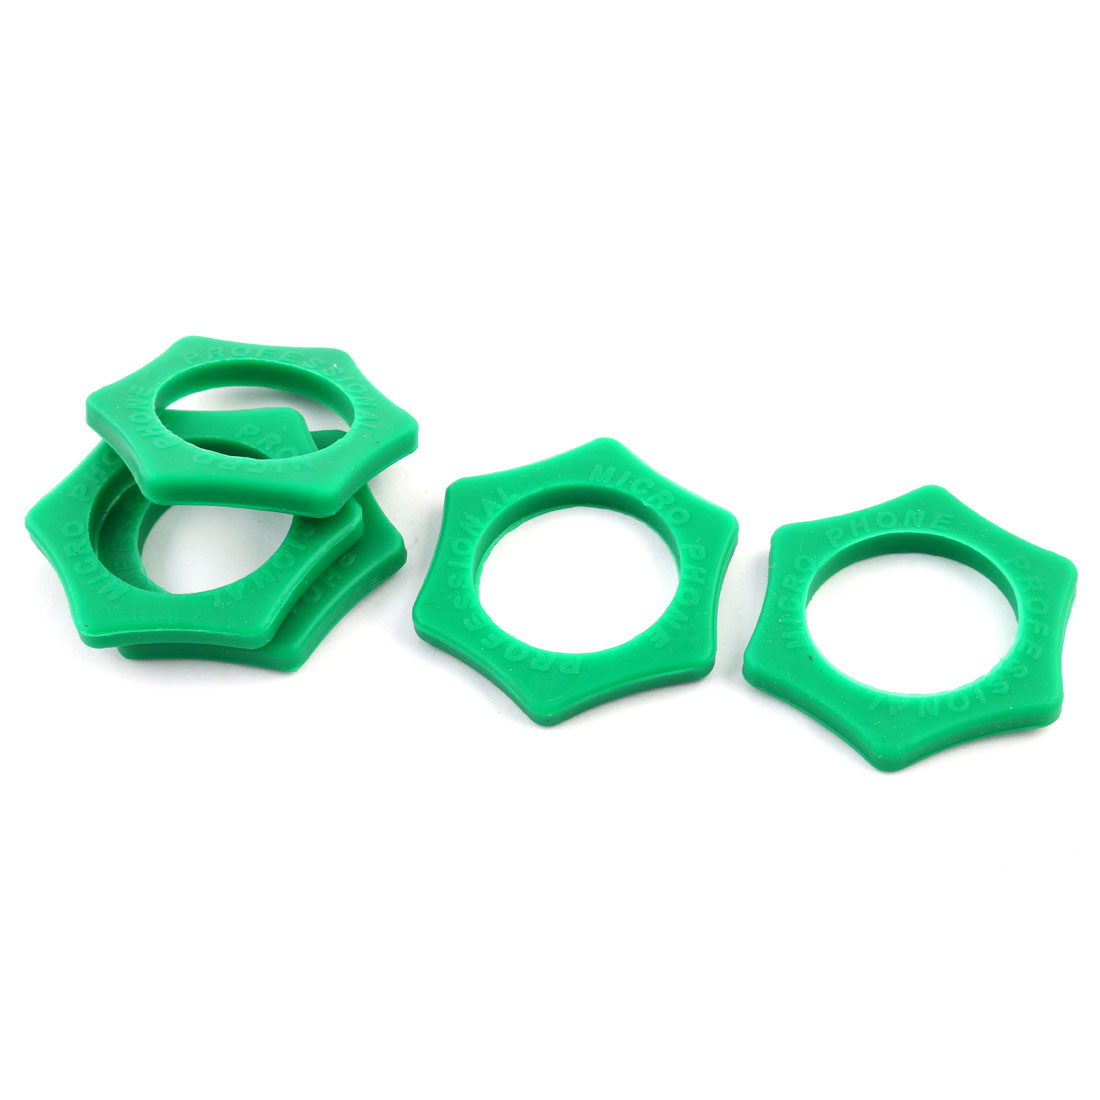 Handheld Microphone Anti Roll Protection Silicone Ring Green 3.7cm Dia 5 PCS - image 3 of 3